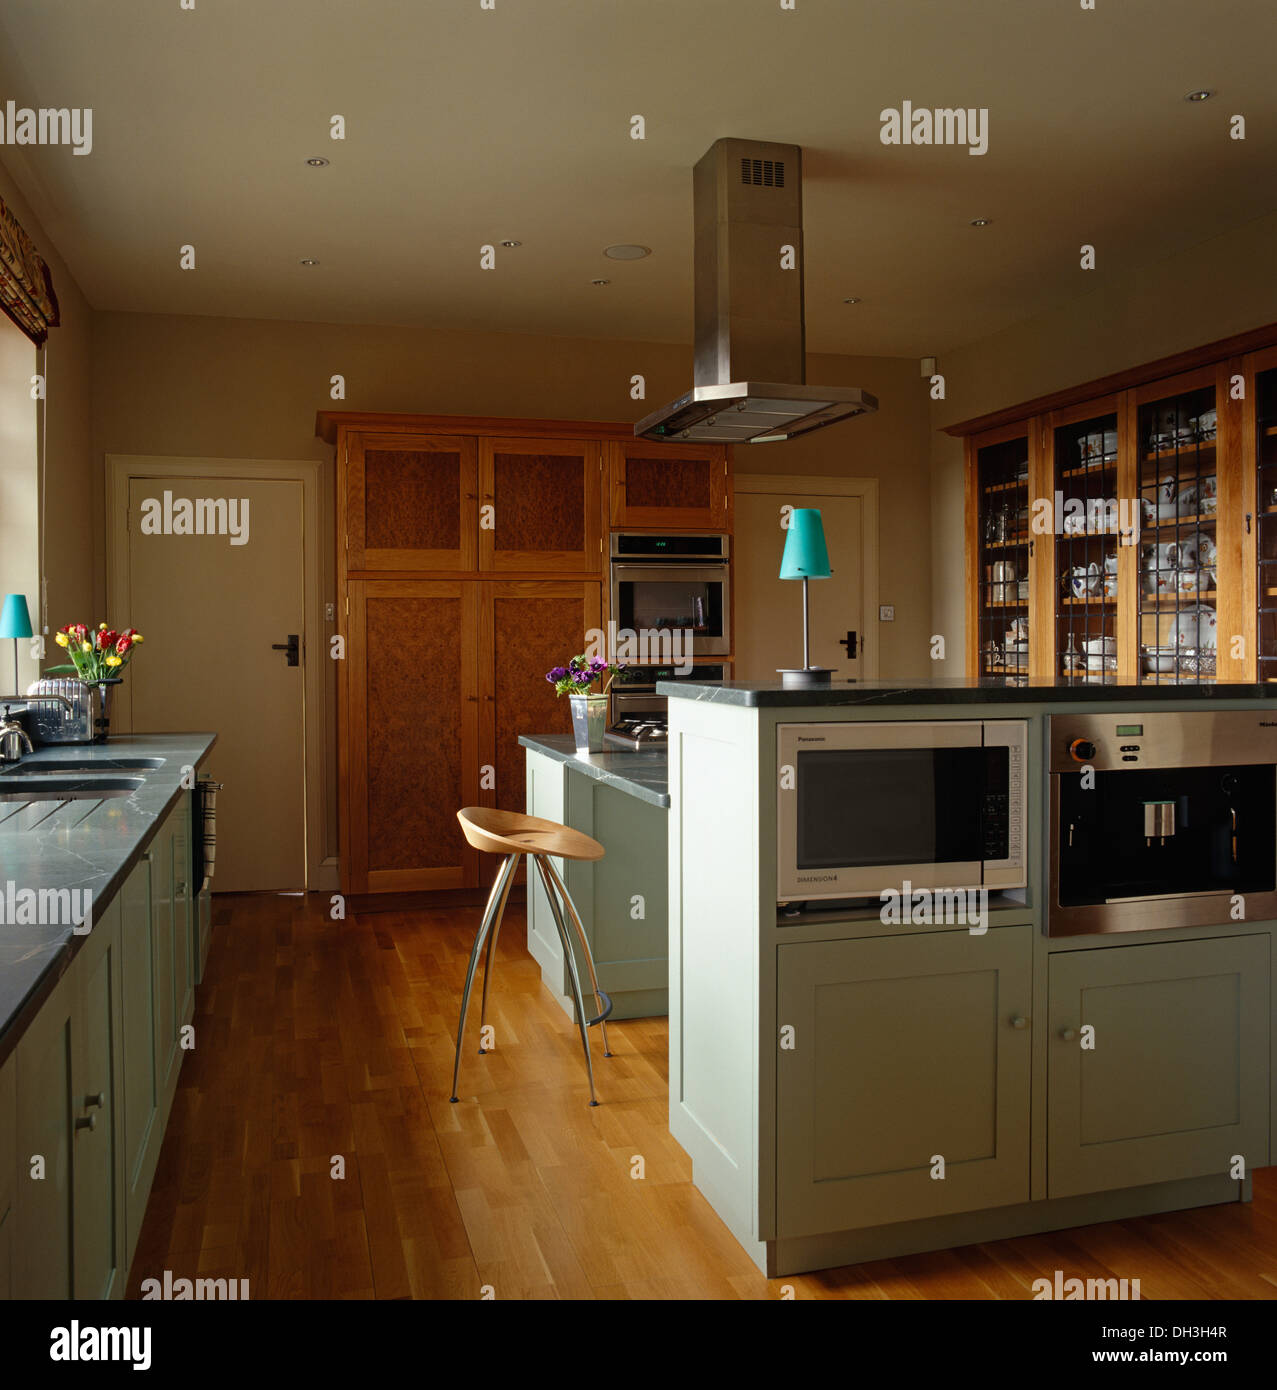 Island Units For Kitchens: Microwave And Oven In Island Unit In Modern Kitchen With